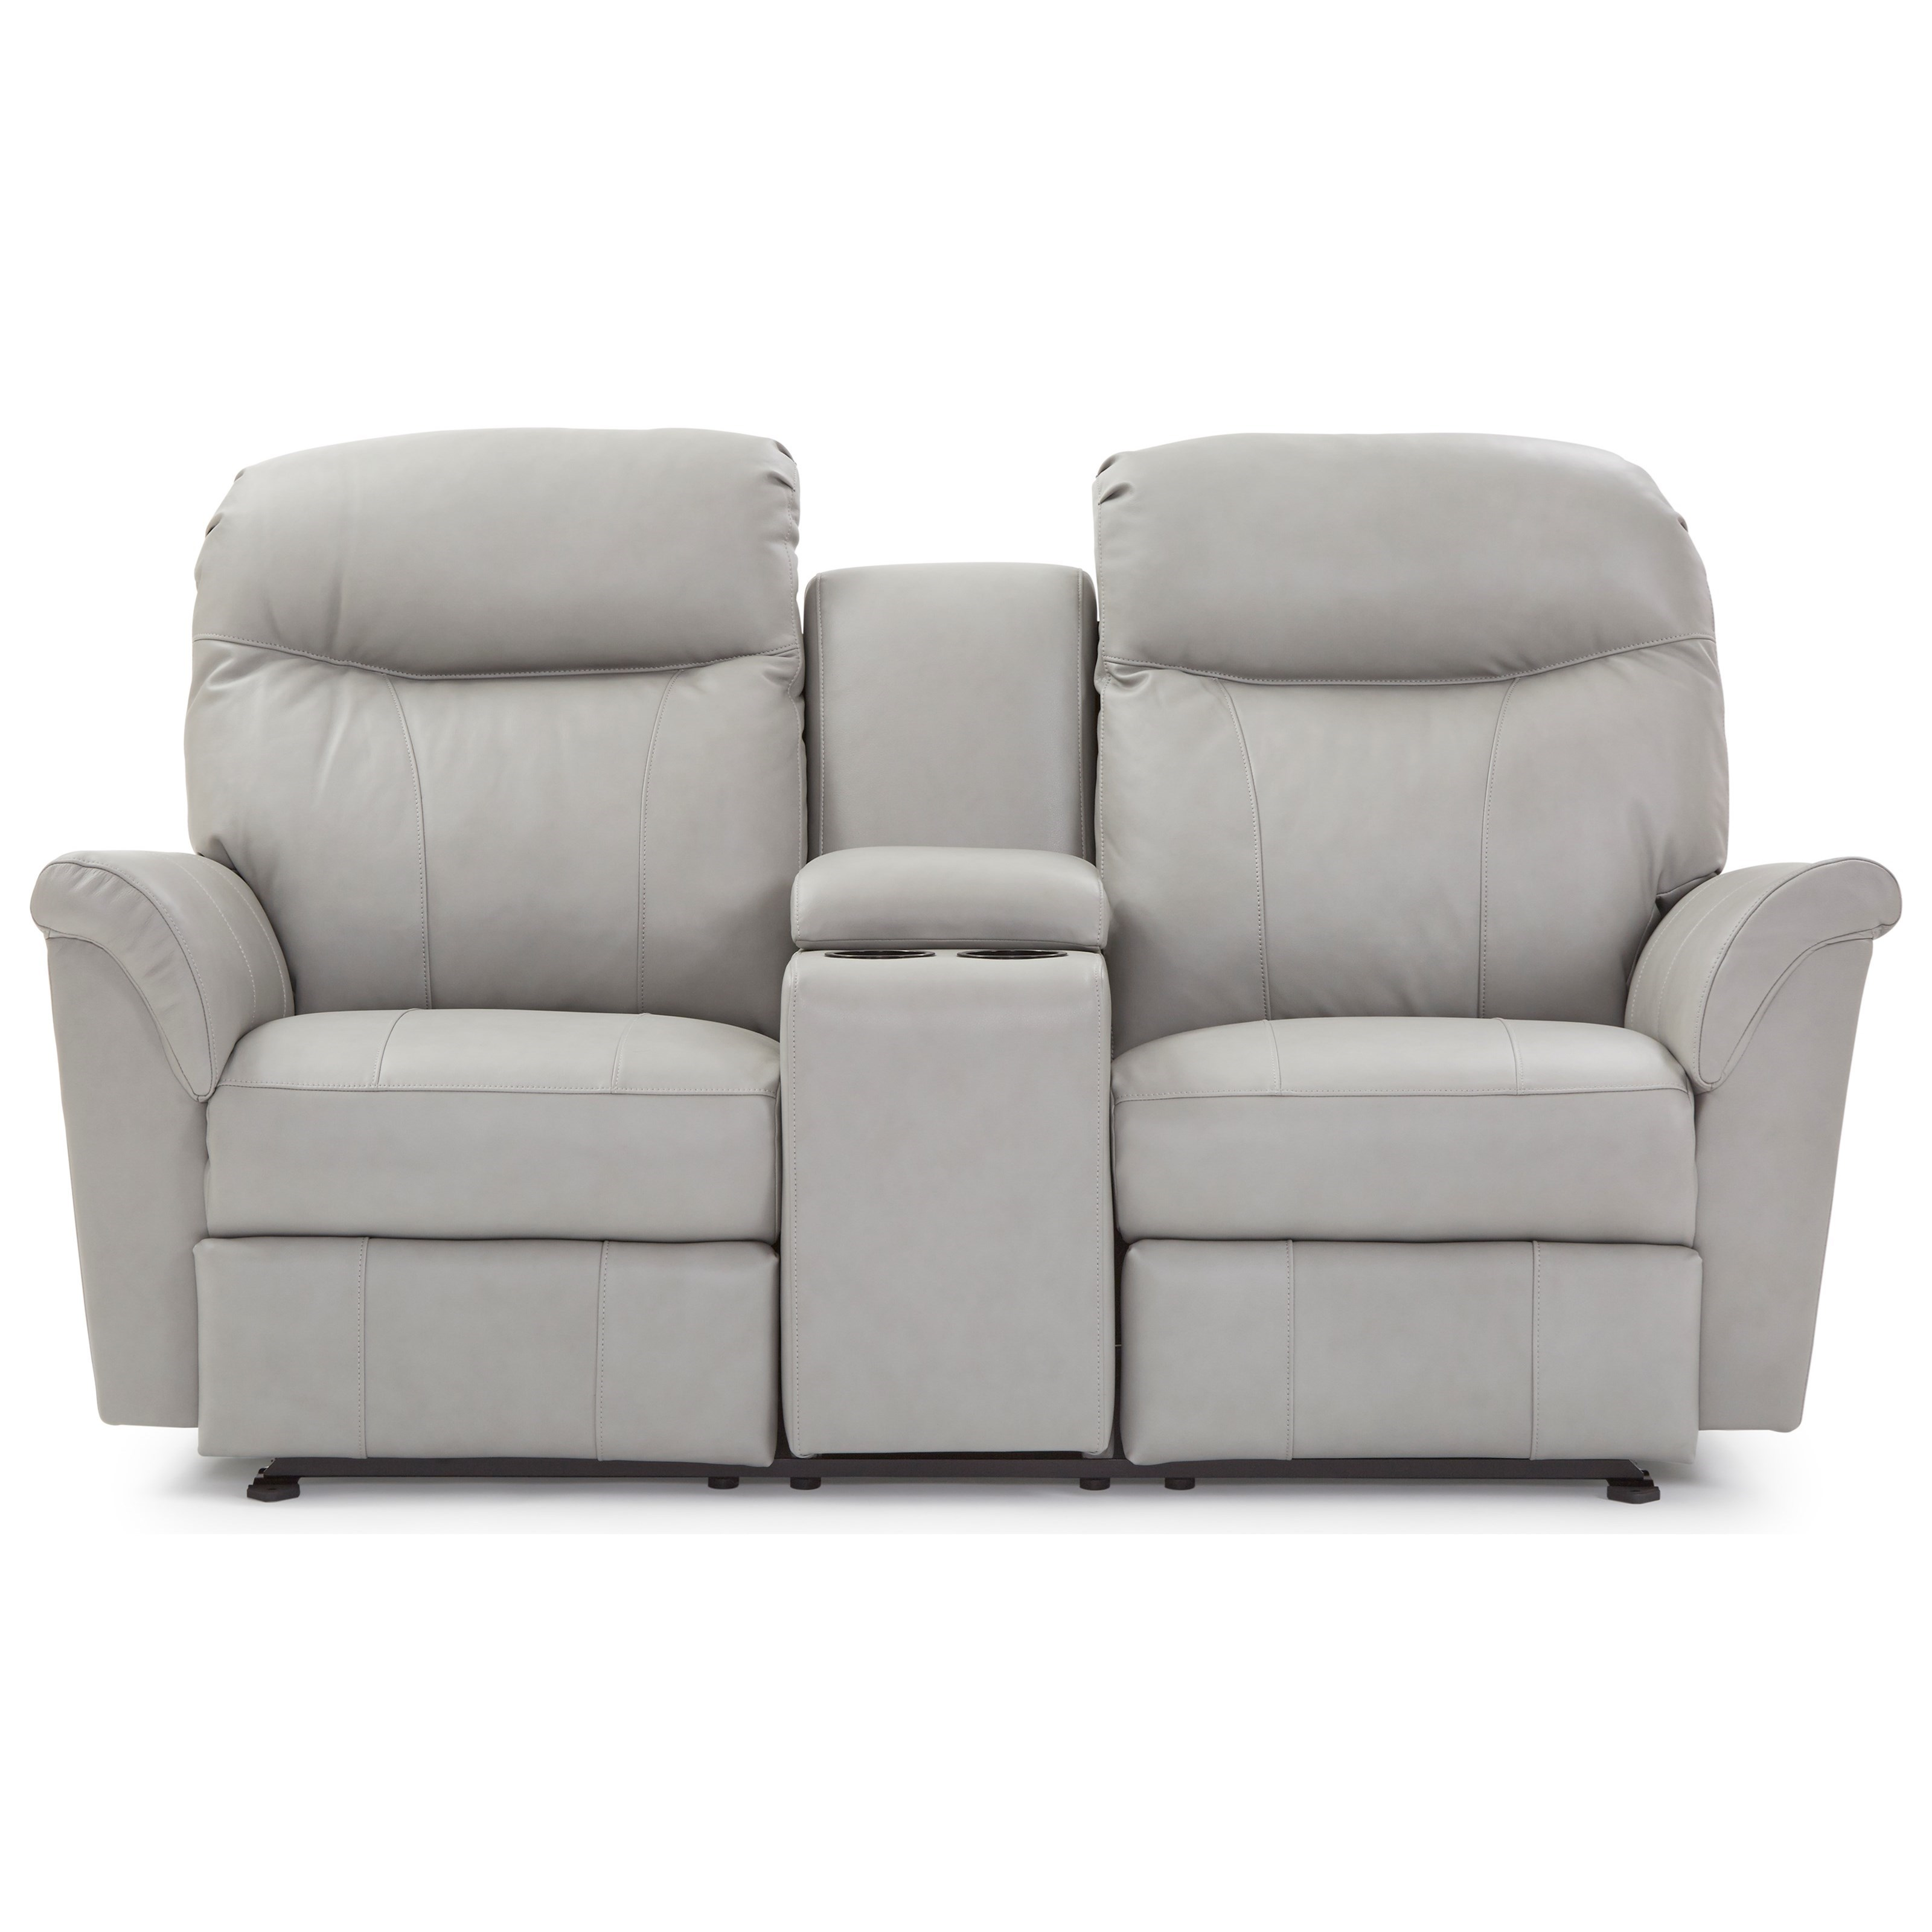 Caitlin Rocking Reclining Console Loveseat by Best Home Furnishings at Baer's Furniture